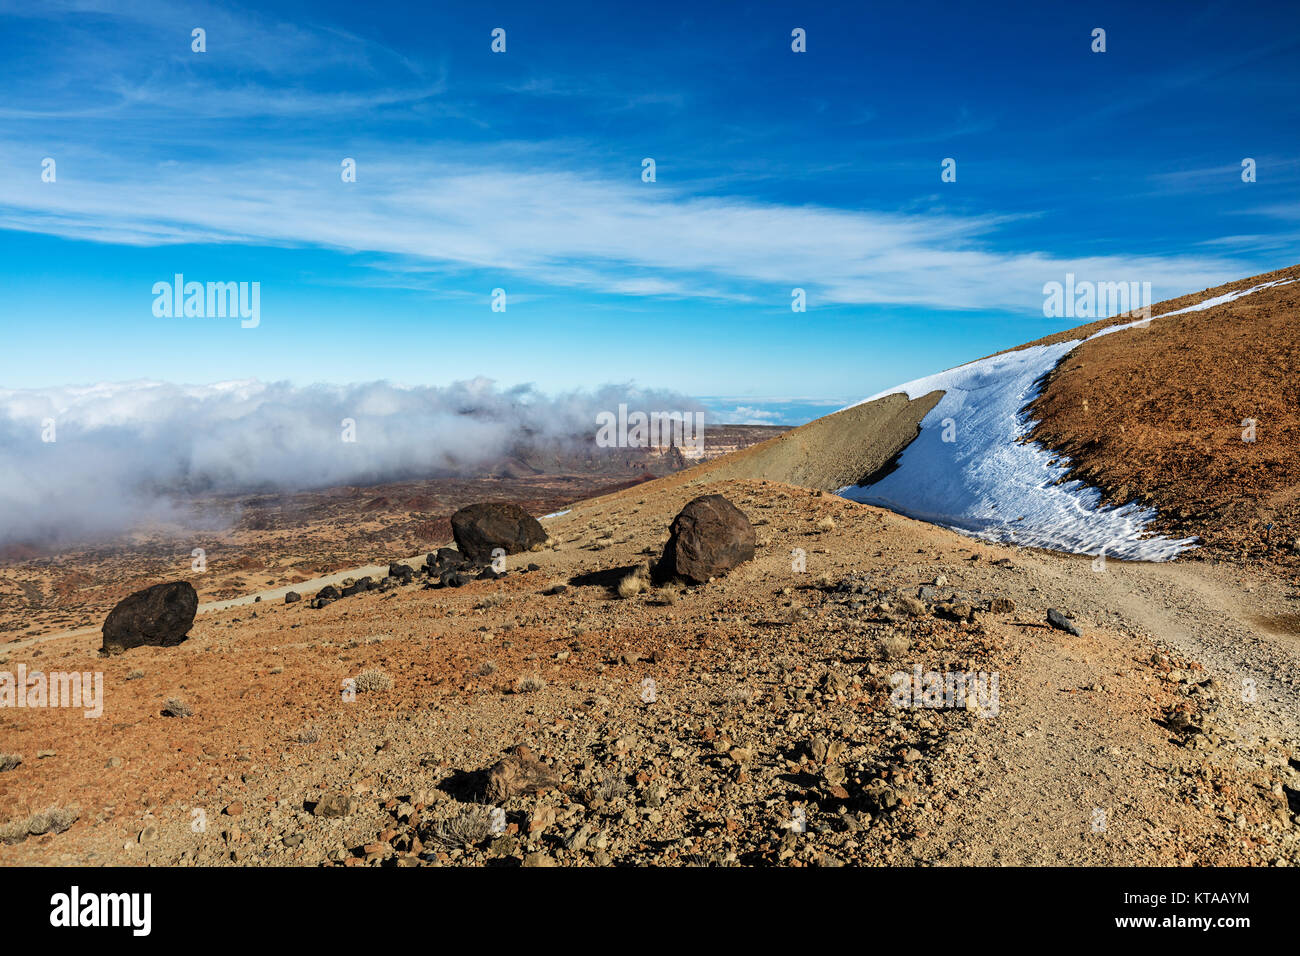 Teide National Park, Tenerife, Canary Islands - A view of `Teide Eggs', or in Spanish `Huevos del Teide'. Stock Photo